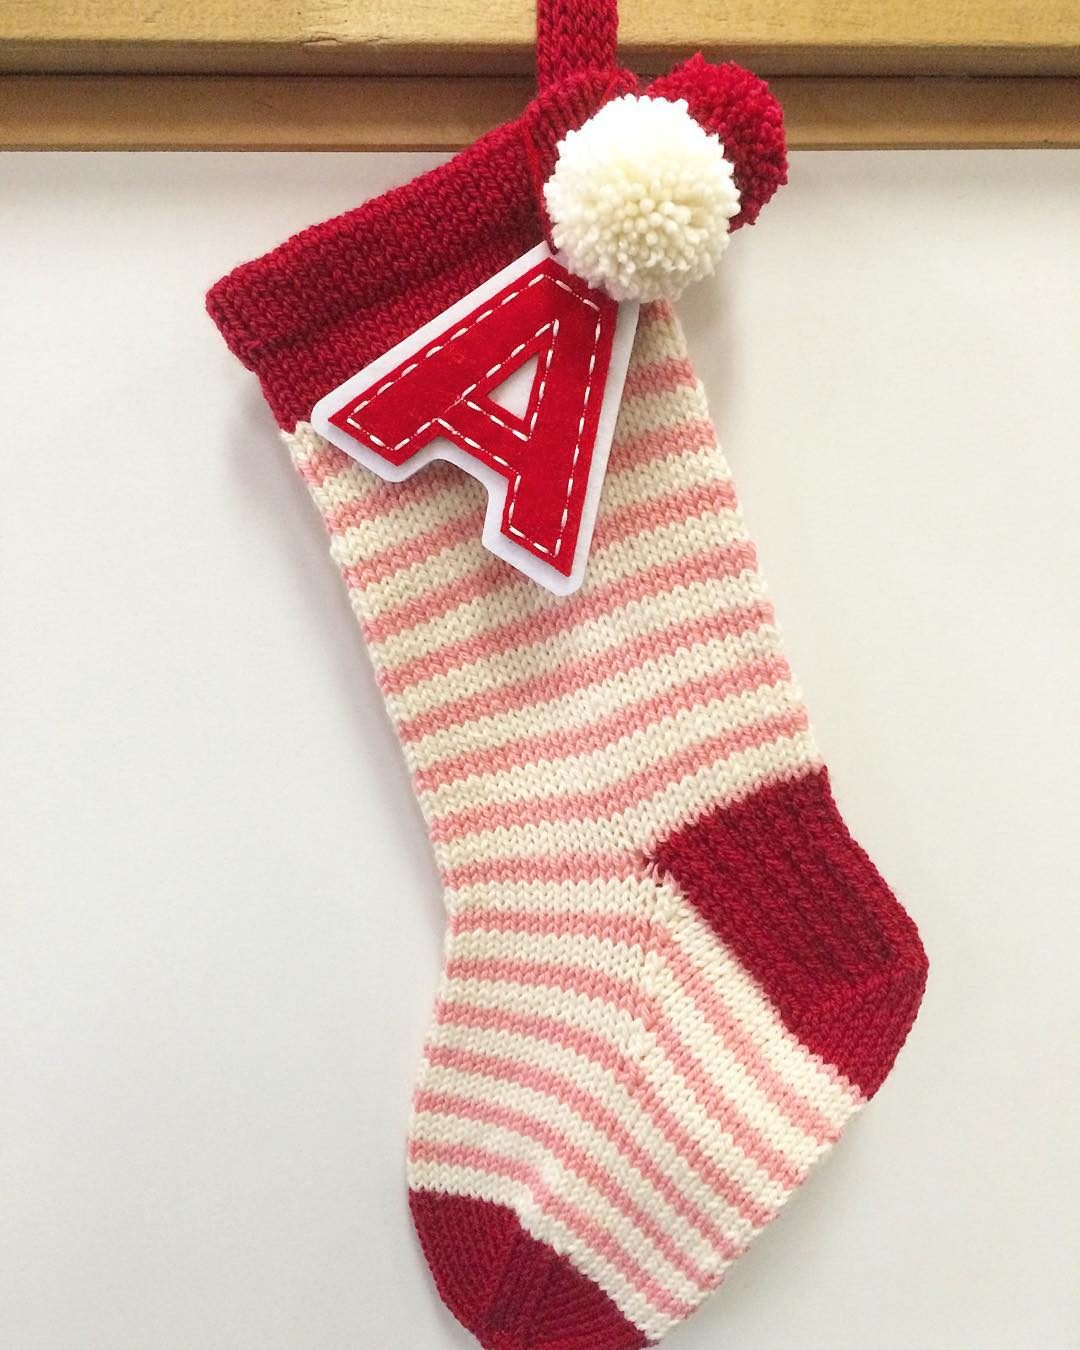 KaityBeth's sweet stocking. See on  Ravelry >